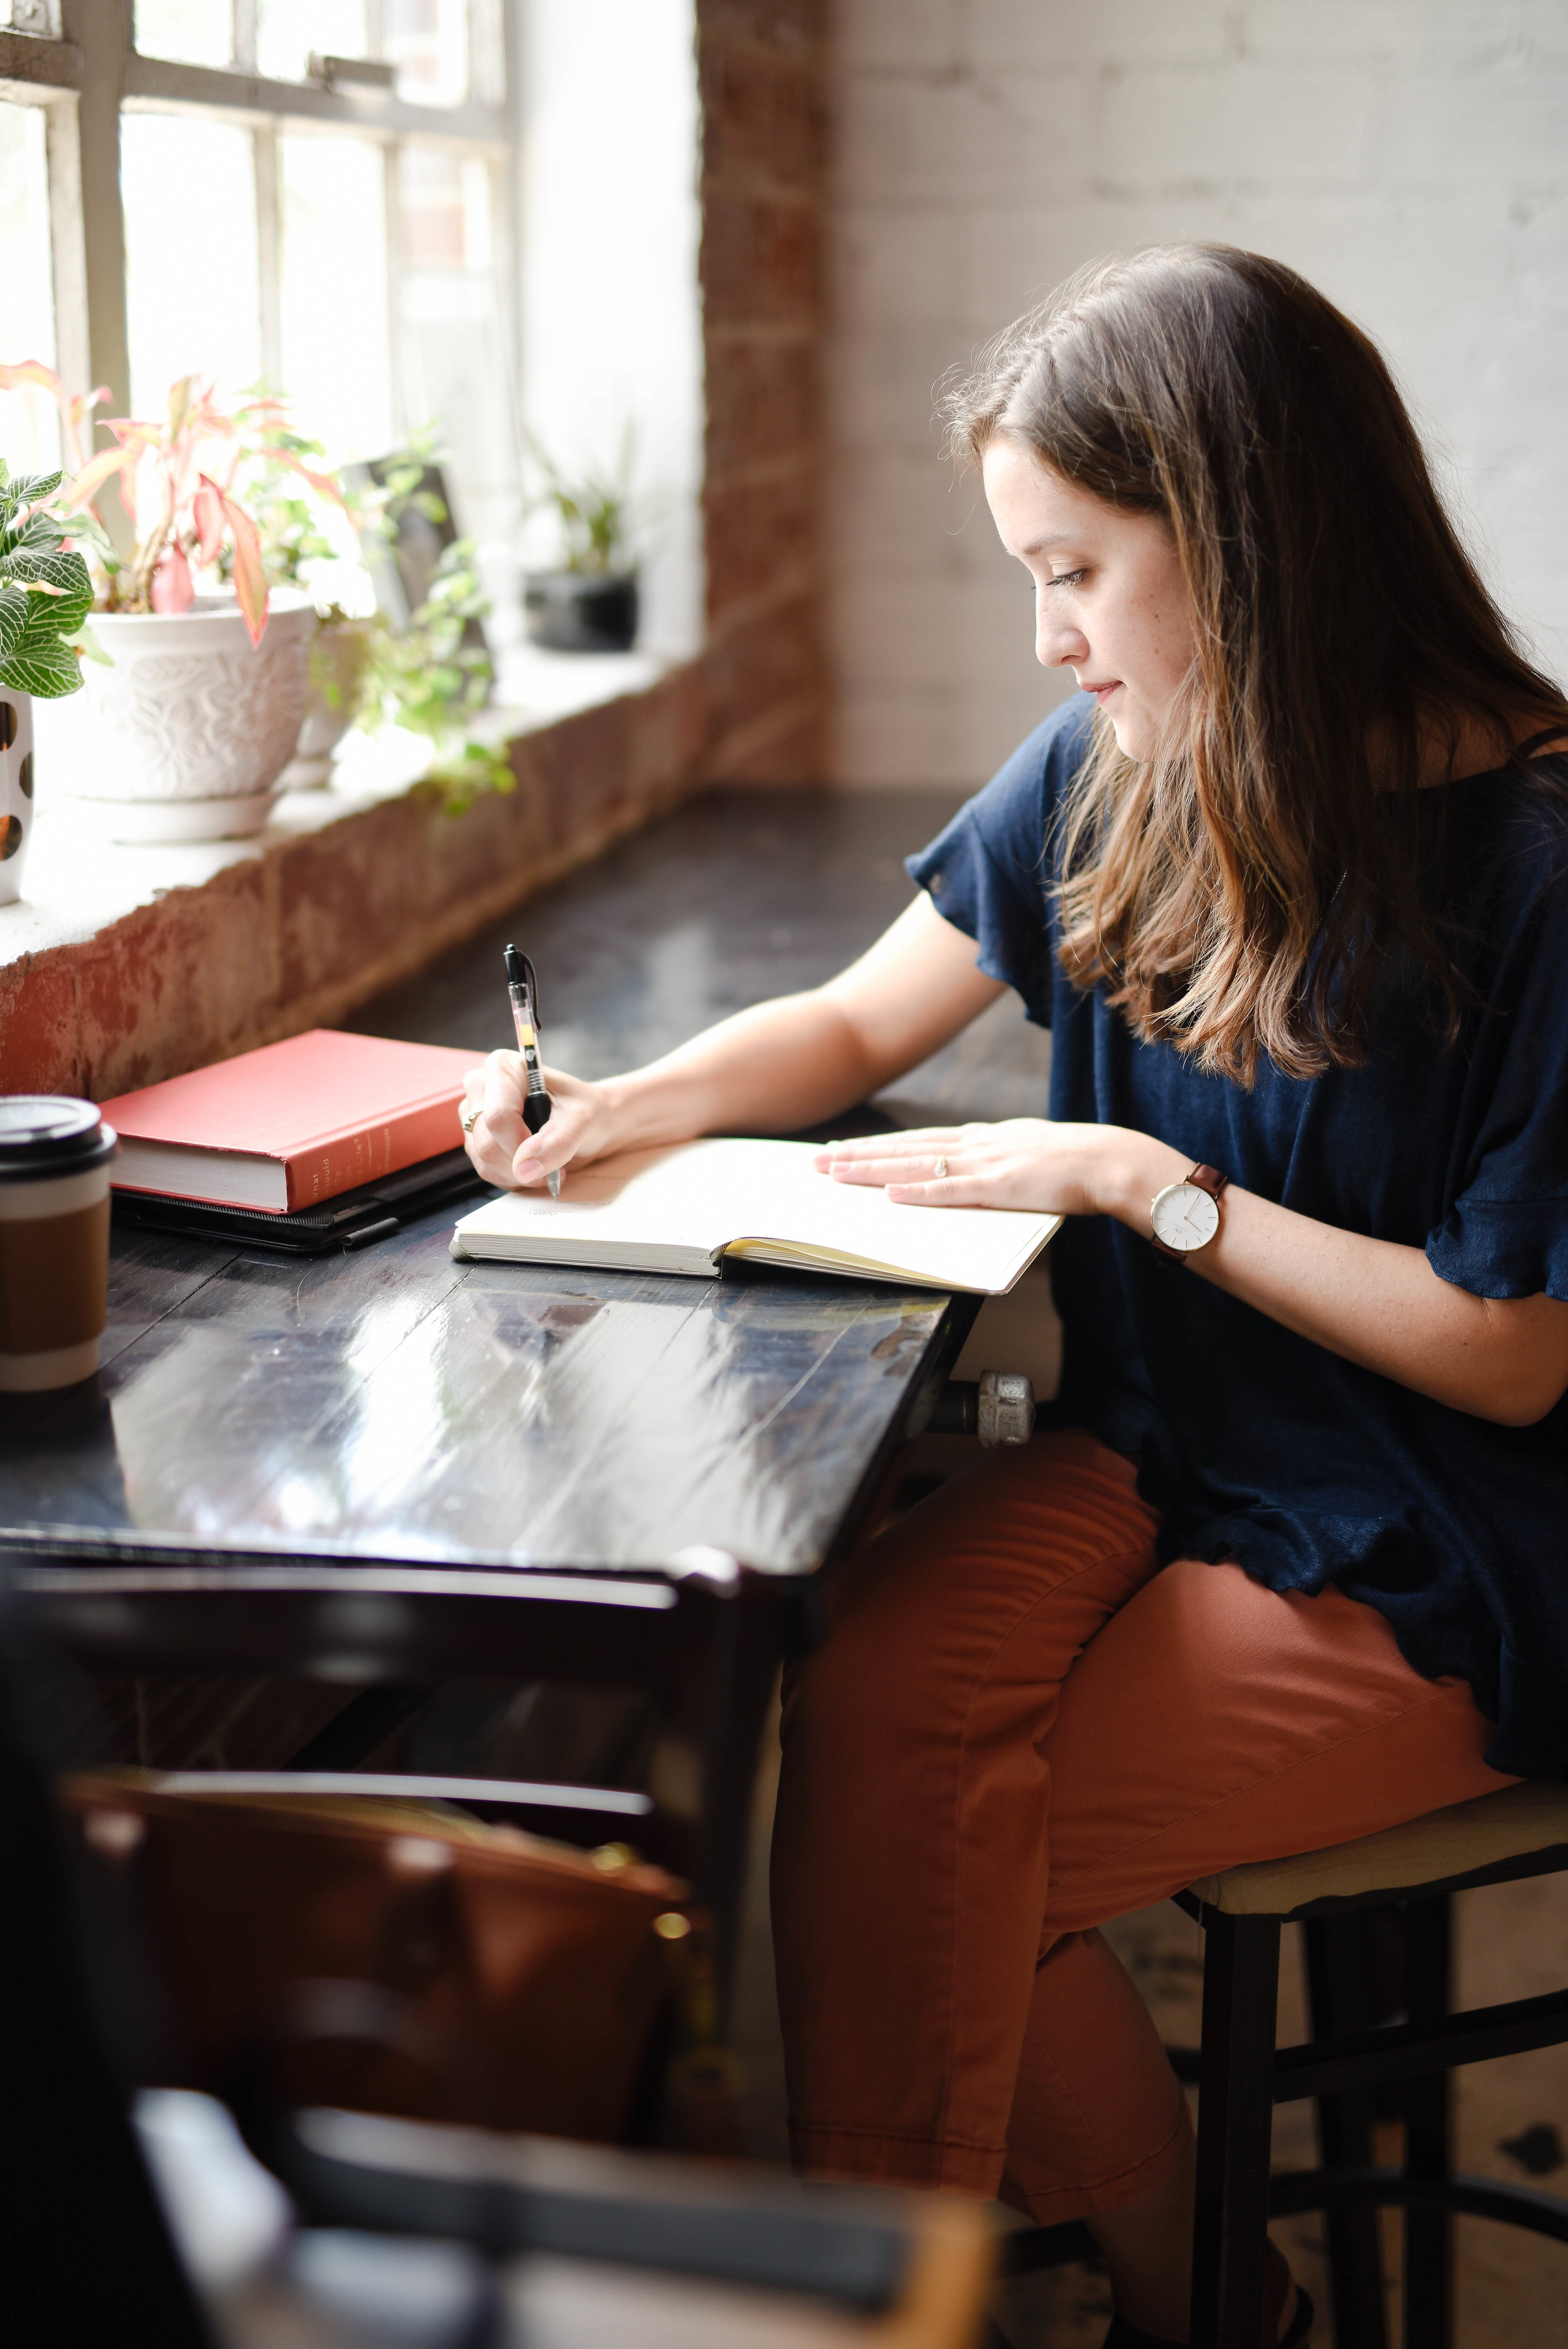 4. Create A List of Wants & Needs For Your Future Home - This is best to do after you get a mortgage pre-approval so that you have a budget in mind. I find it is best to create a full list of all the wants and needs you have for your first home. Distinguish between what are wants and what are needs. After writing out as many as you can, choose your TOP 5 MOST IMPORANT. For example, when buying our first home we had decided on these 5 things: Minimum 2 Bedrooms, Nice Yard, Detached, Forced Air/Gas Heat, and in our Desired Location. Everyone will have different needs & wants but no house will be 100% perfect. If you can find a home that meets your top 5, then you're on the right track.